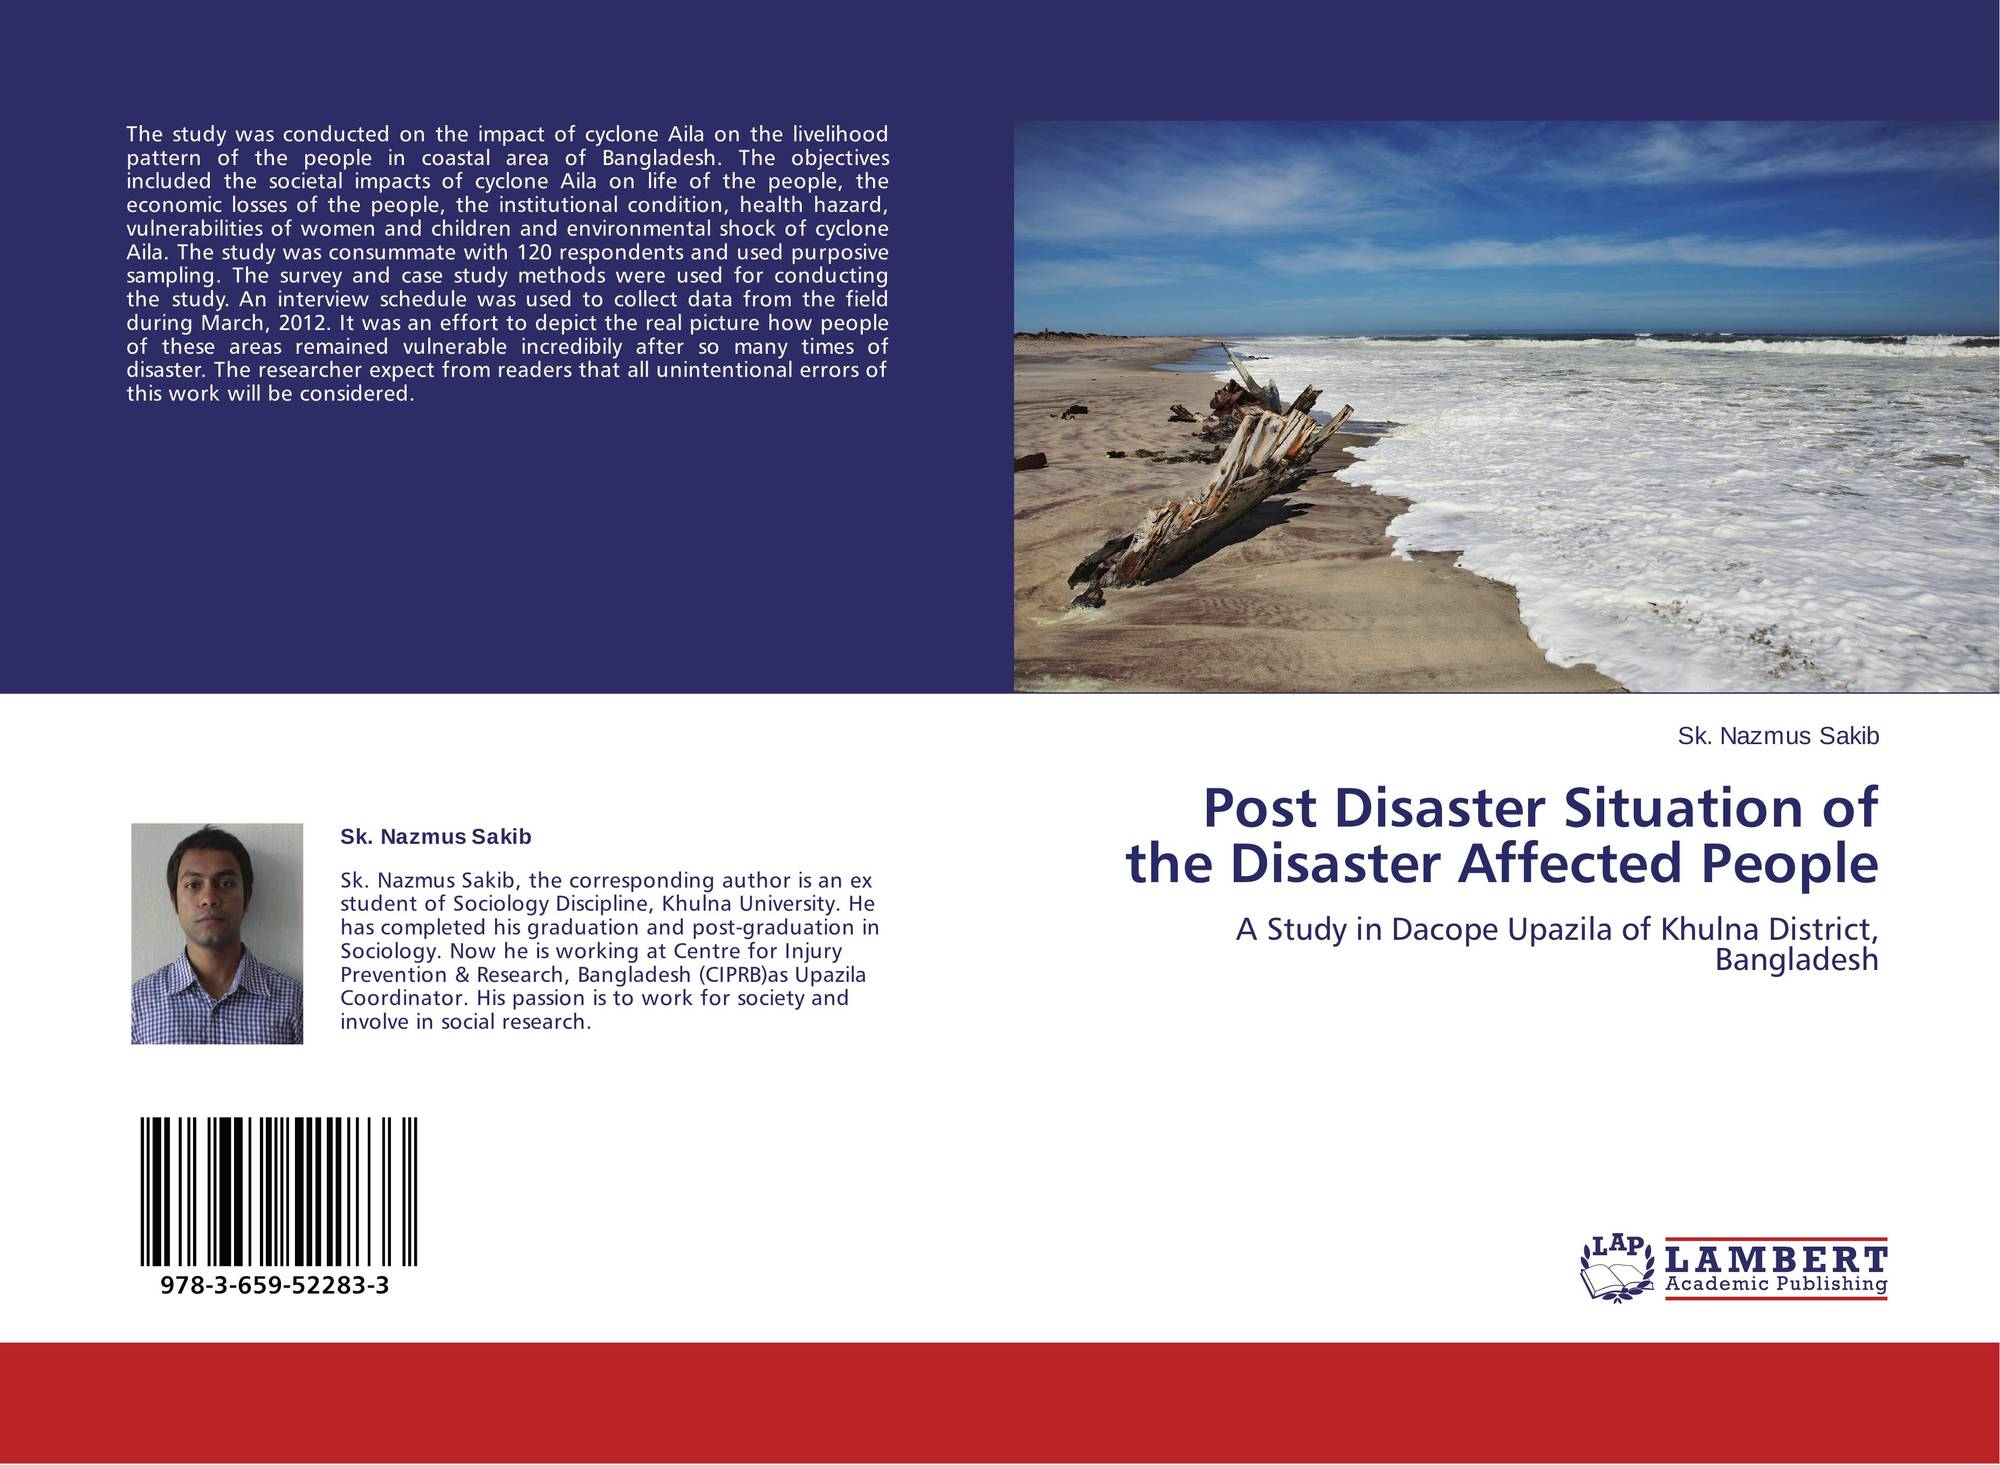 Post Disaster Situation of the Disaster Affected People, 978